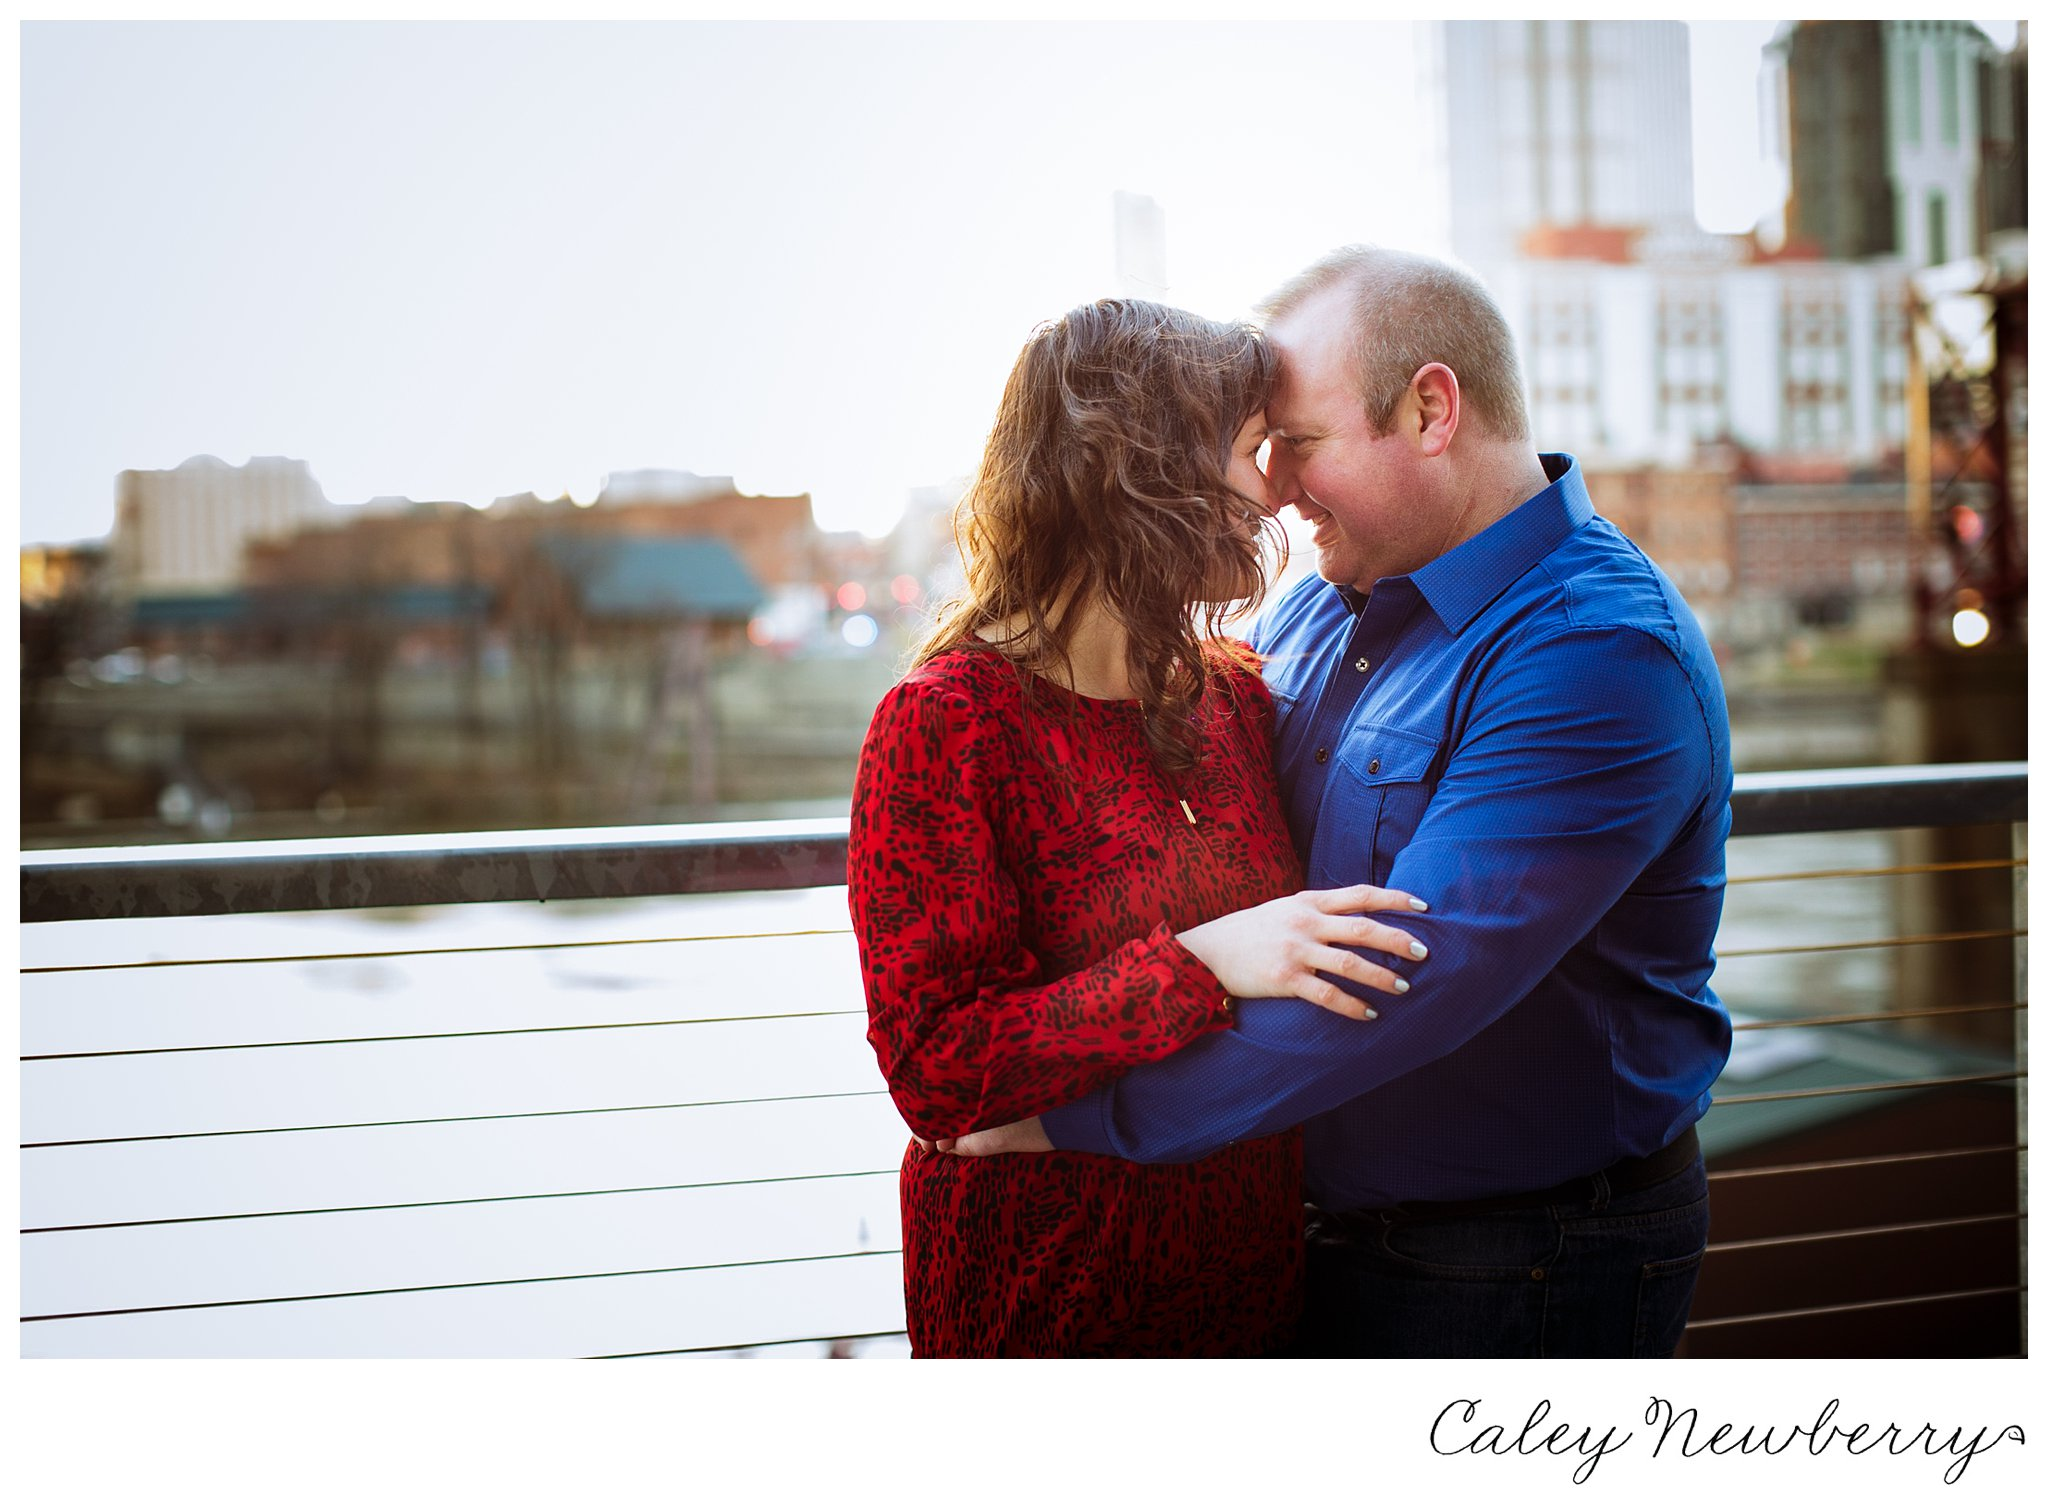 downtown nashville engagement session, downtown nashville photography, downtown nashville photographer, caley newberry photography, nashville wedding photographer